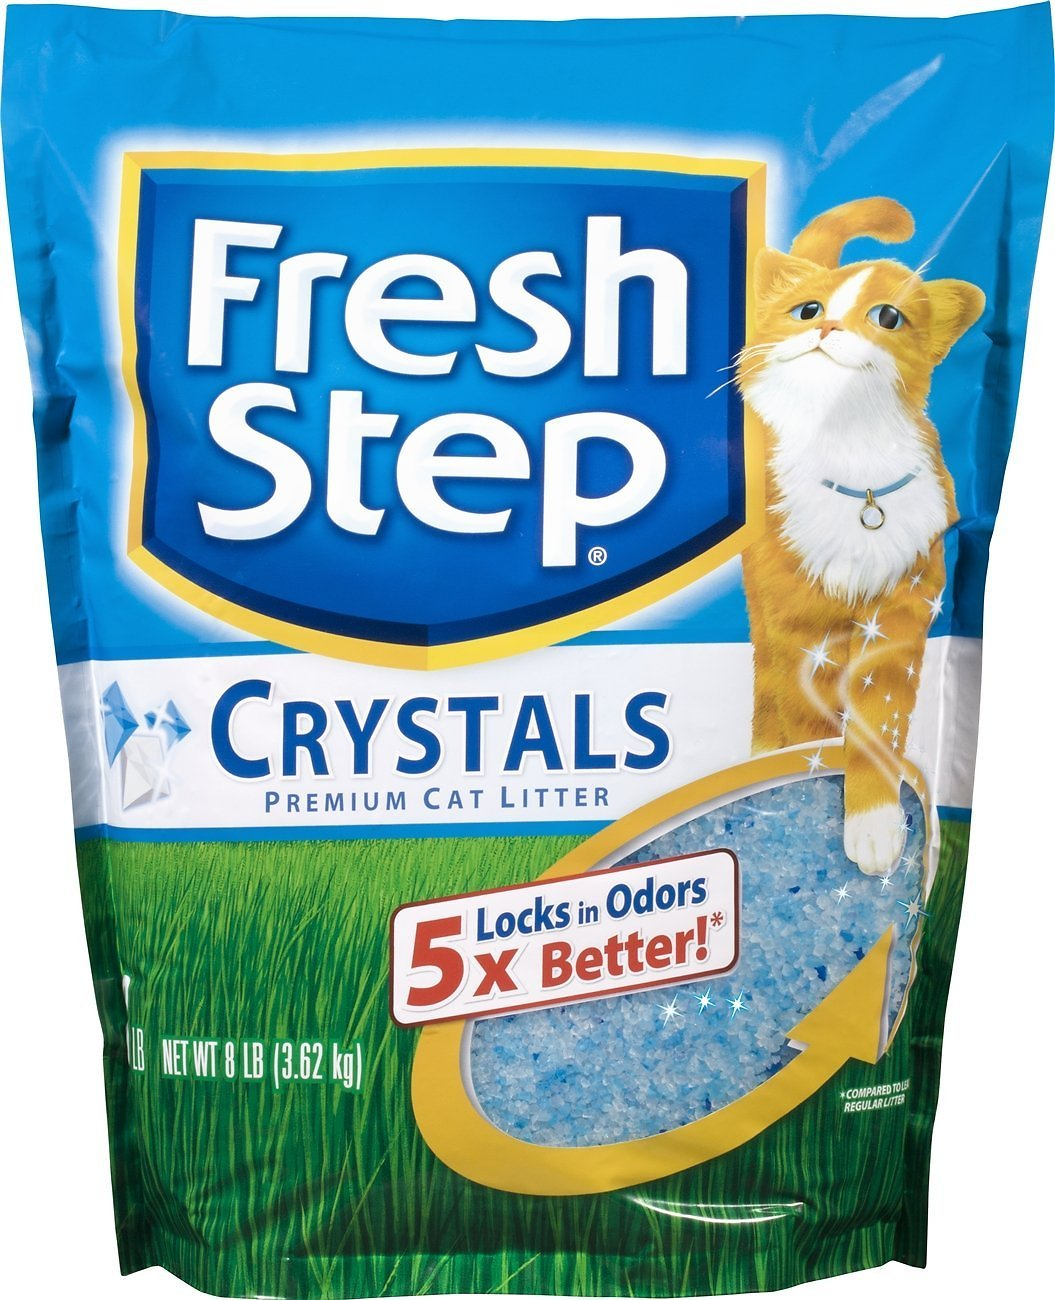 Fresh Step Crystals Cat Litter, 8-lb bag (Weights: 8.0pounds) Image